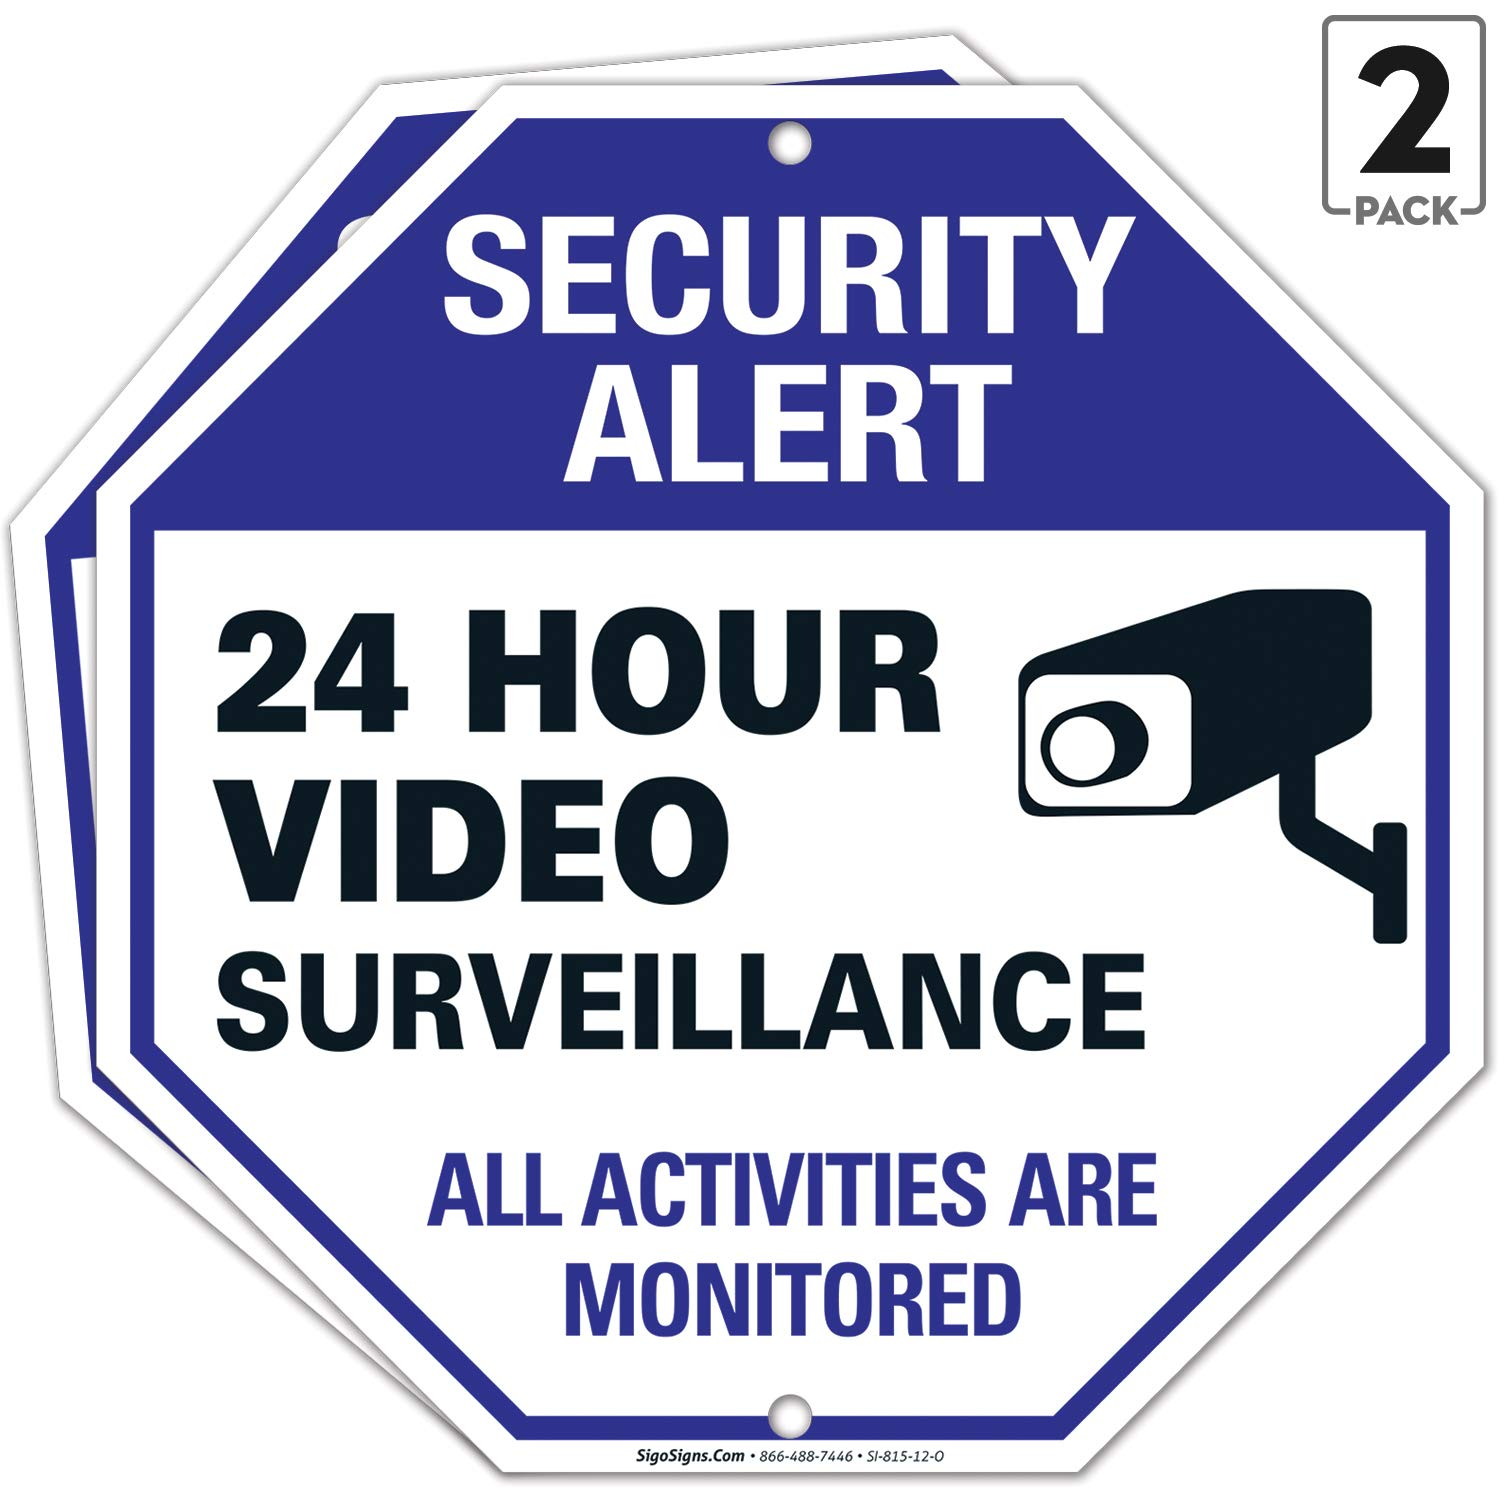 Video Surveillance Sign, (2 Pack) 12x12 Rust Free Aluminum, Weather Fade Resistant, Easy Mounting, Indoor Outdoor Use, Made in USA by SIGO SIGNS (2)